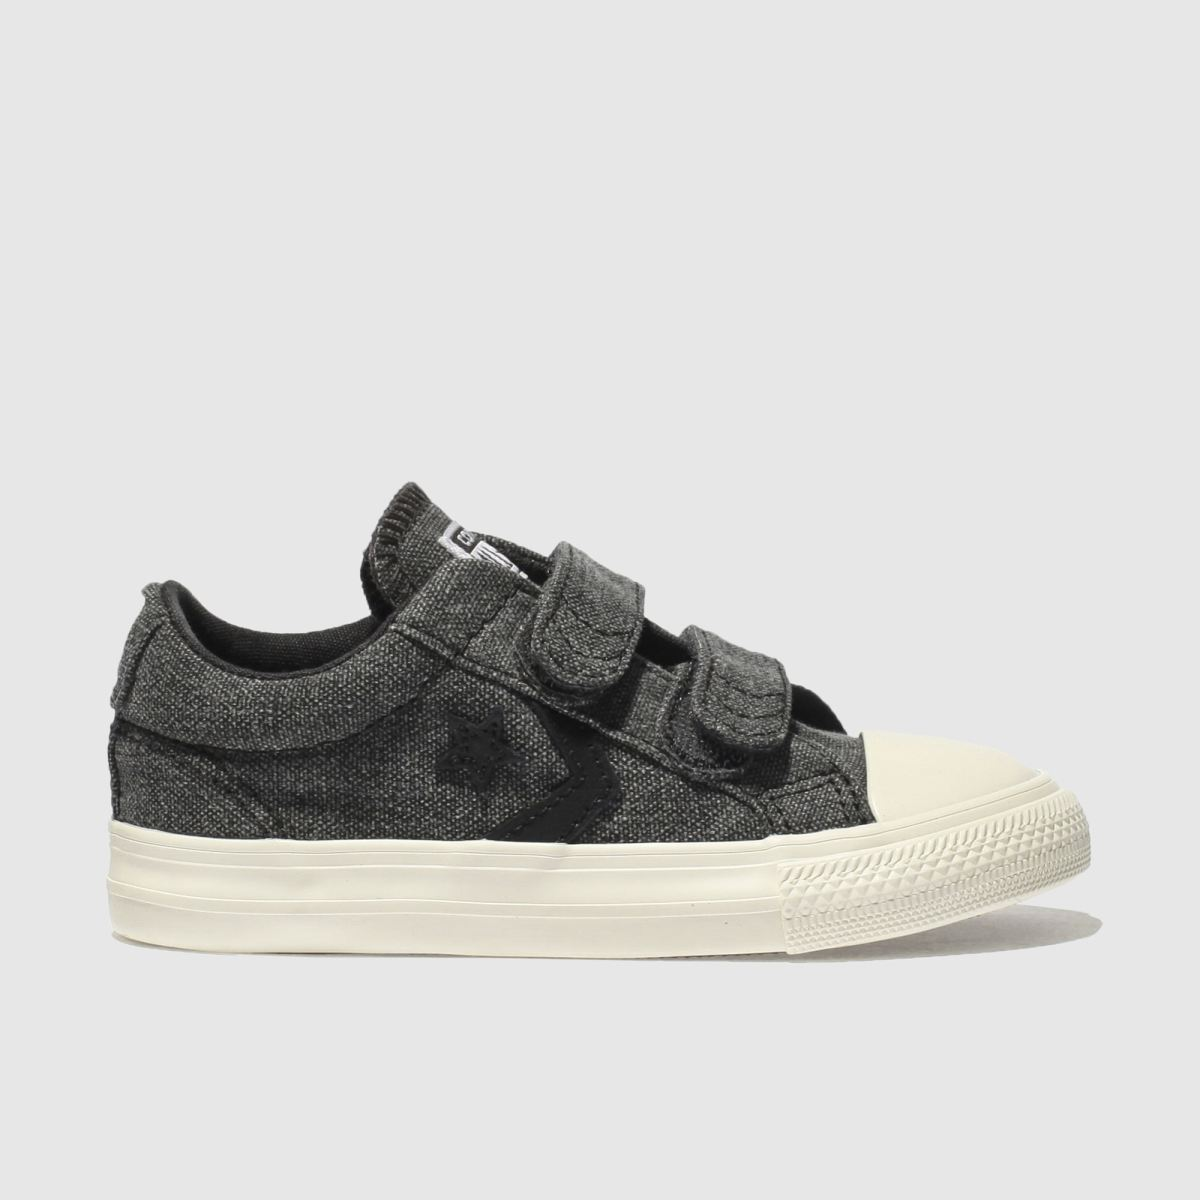 Converse Black Star Player 2v Ox Boys Toddler Trainers